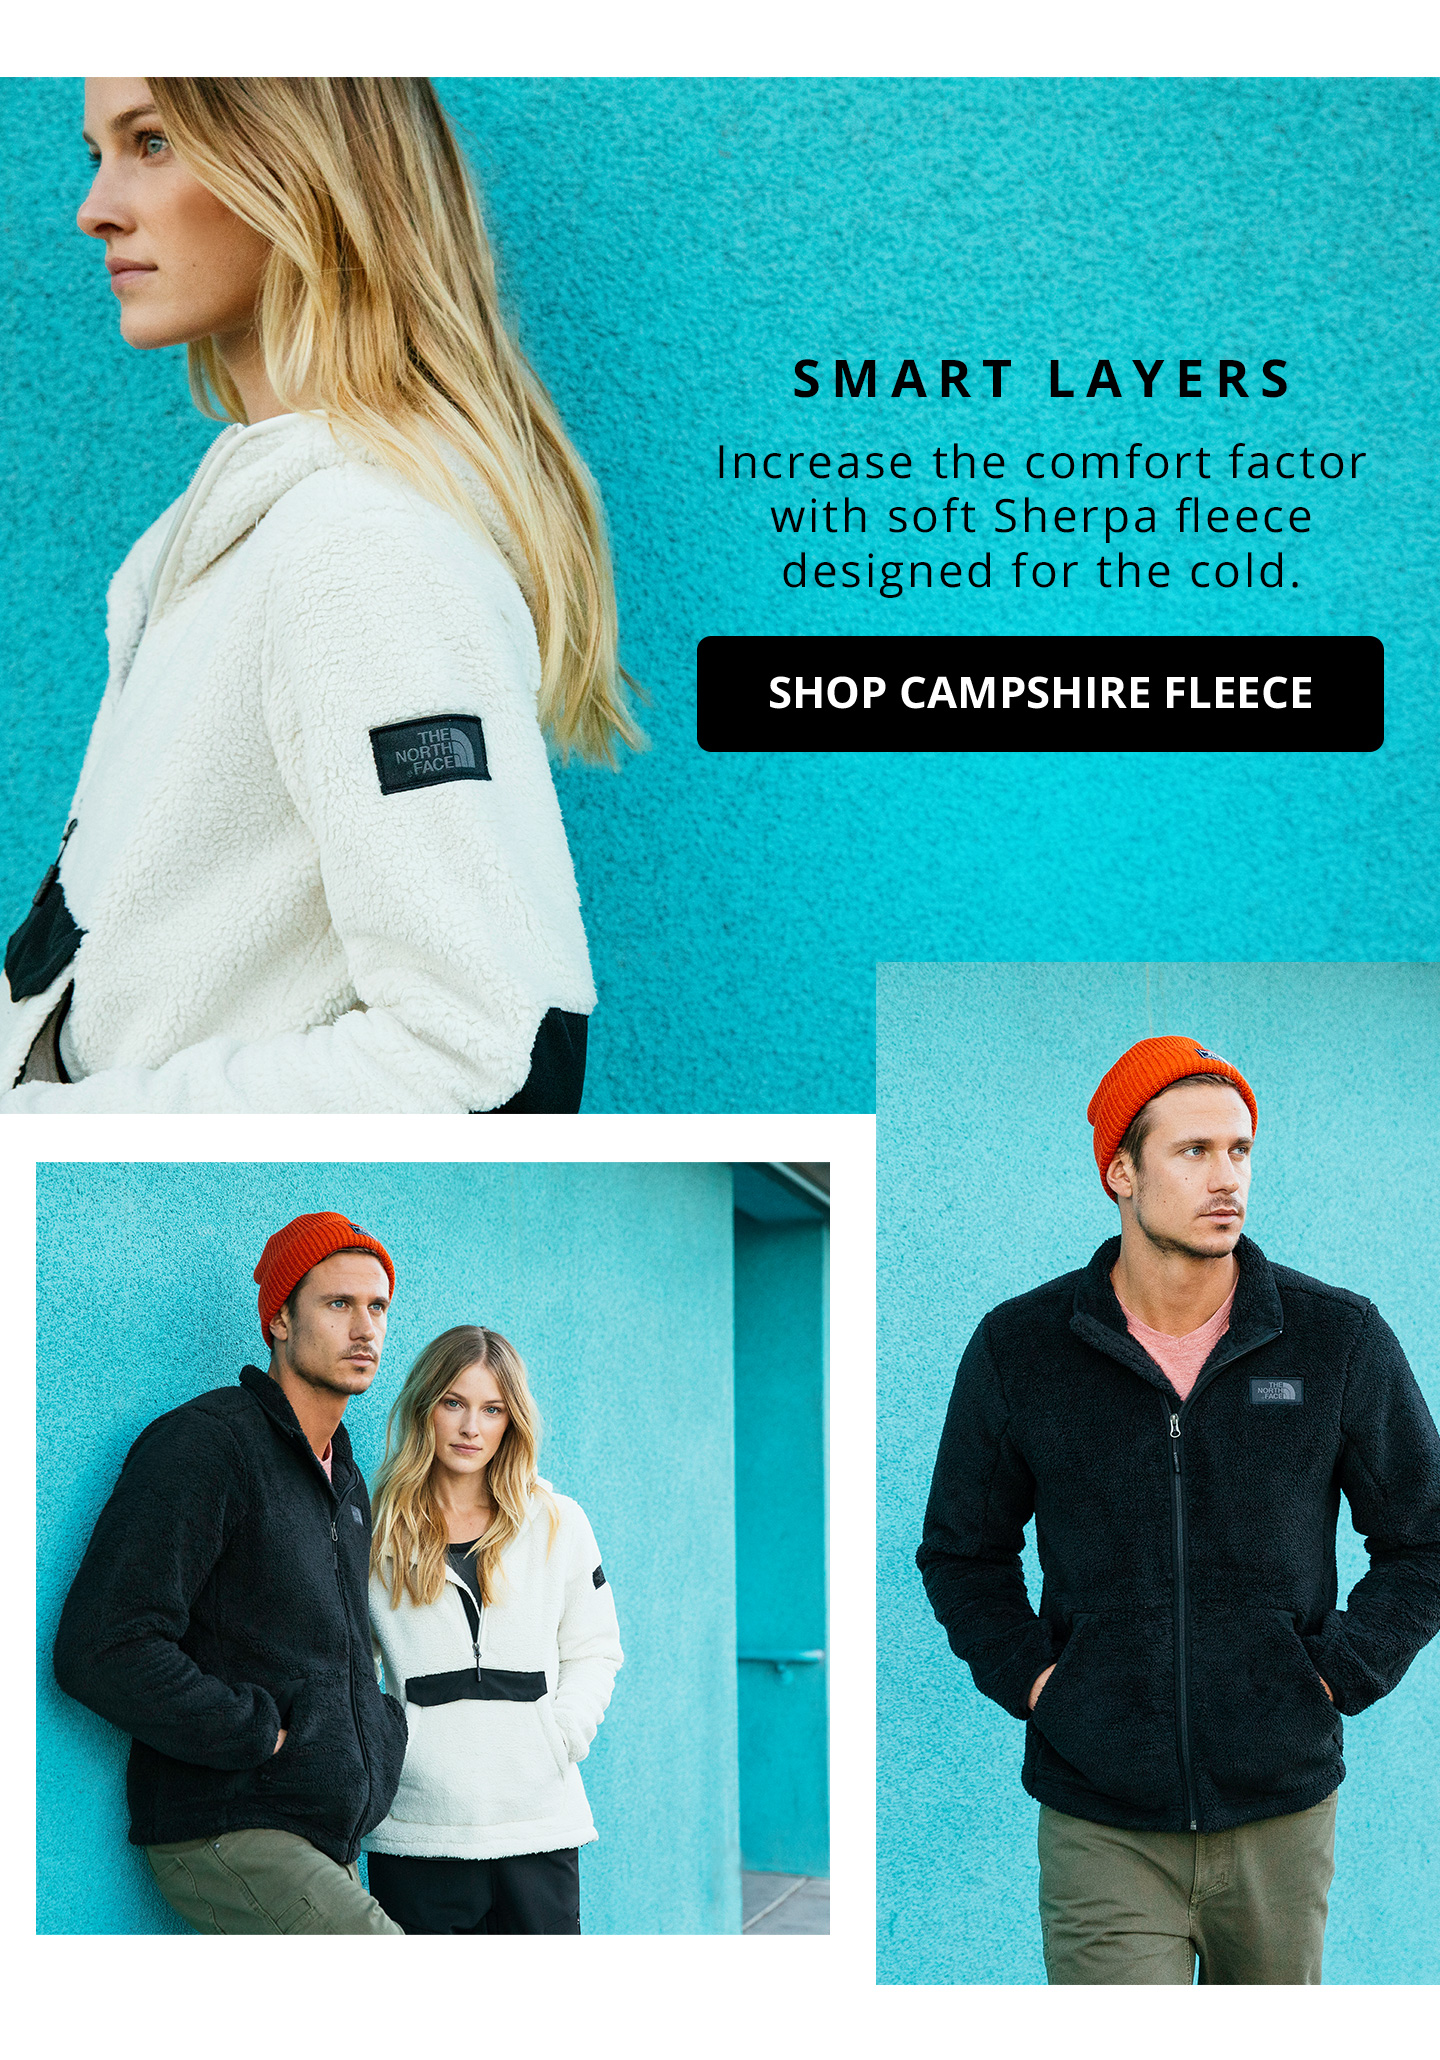 Shop Campshire Fleece